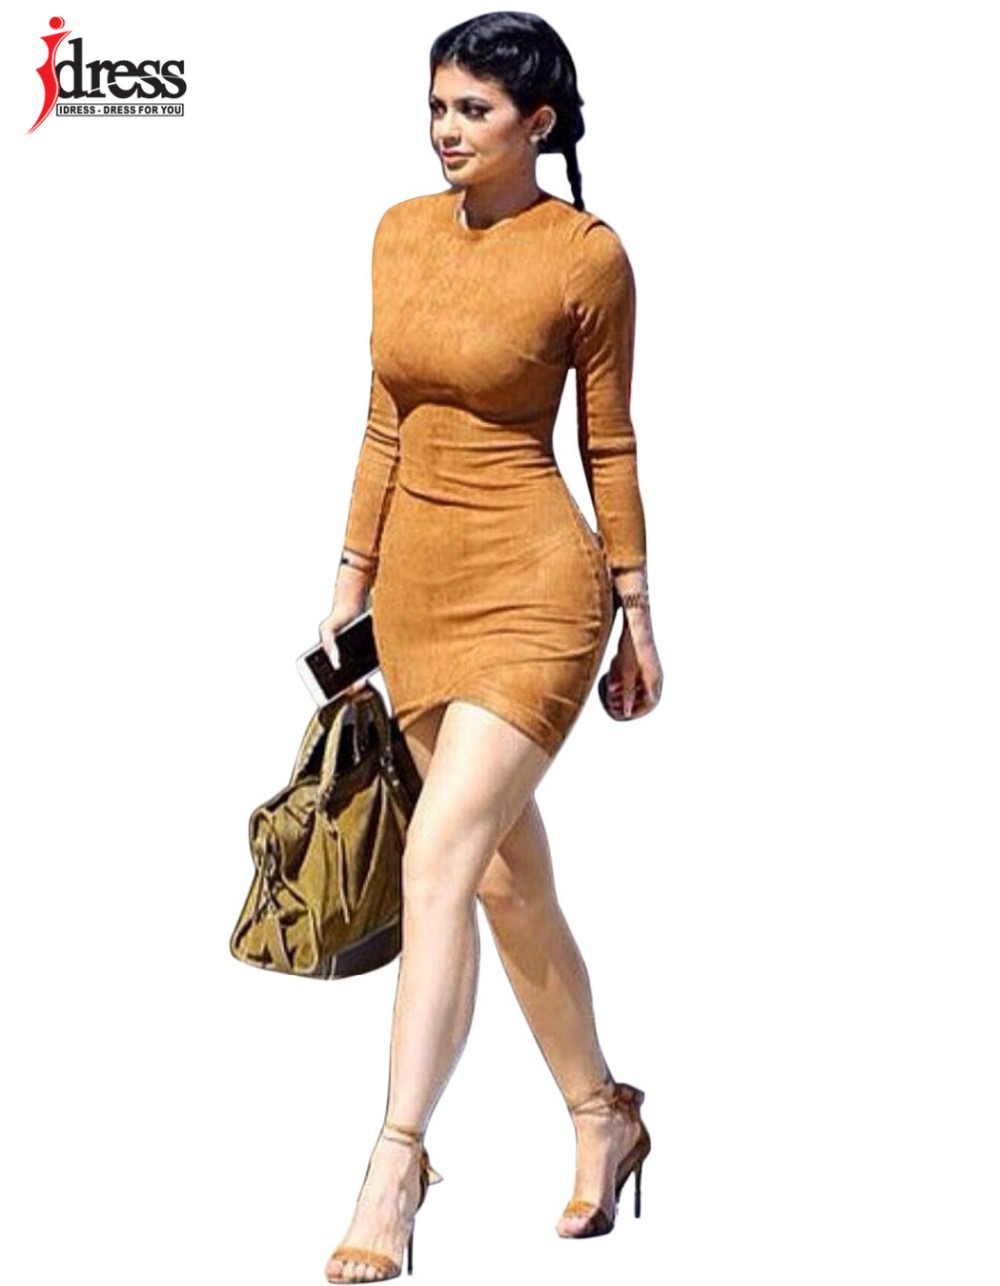 IDress 2016 Grey Brown Faux Suede Dress Bodycon Party Dresses Women Clothing Sexy Club Bandage Long Sleeve Autumn Dress Plus Size (2)